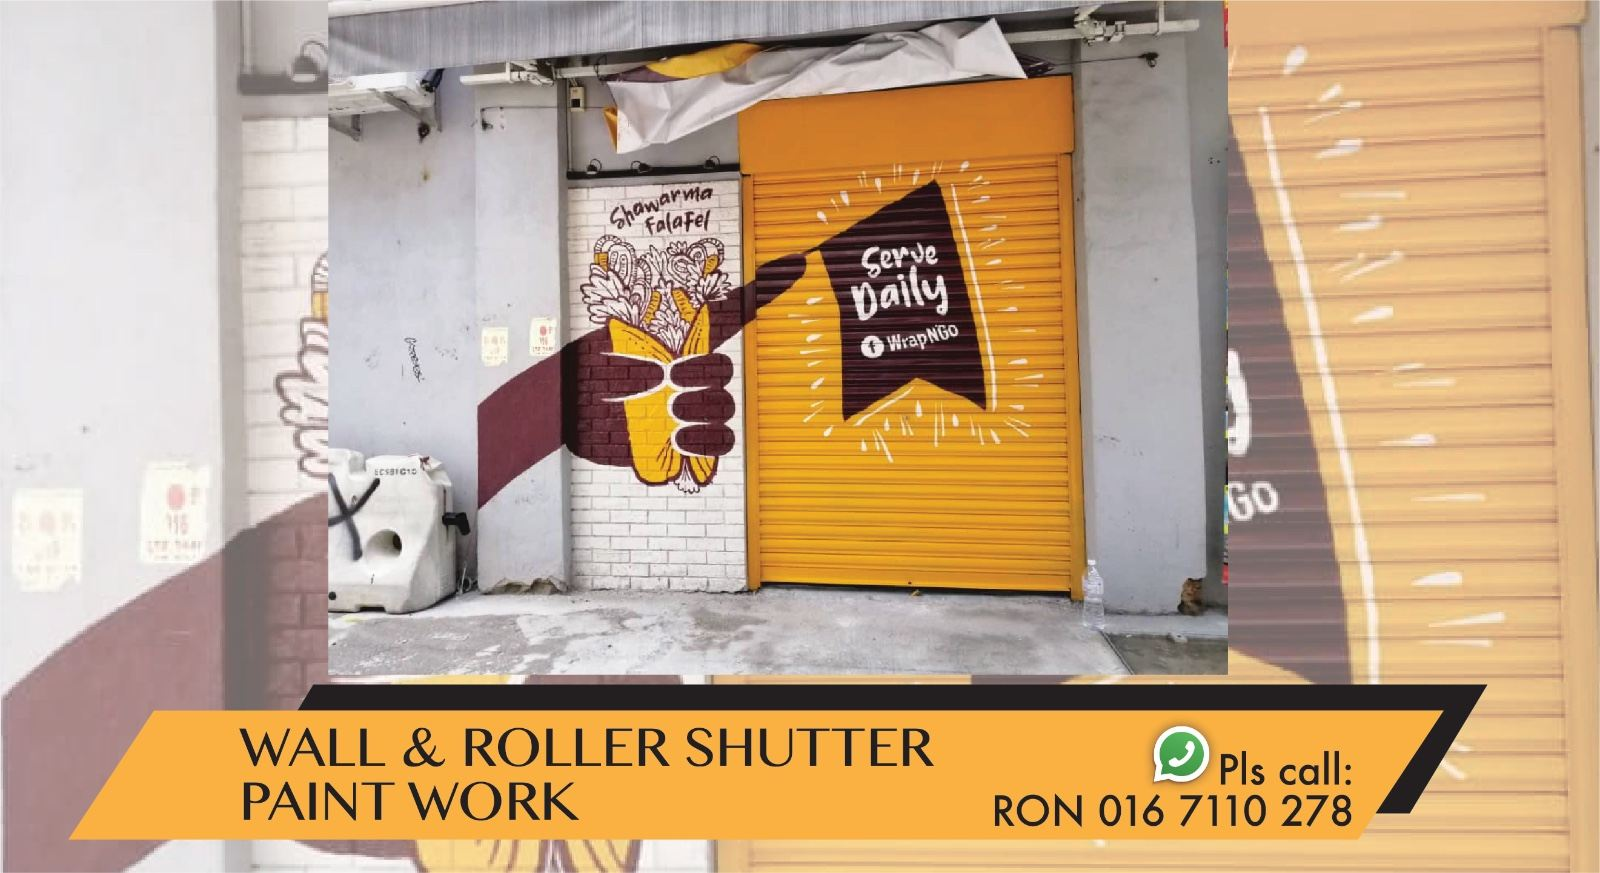 ROLLER SHUTTER & WALL PAINT WORK